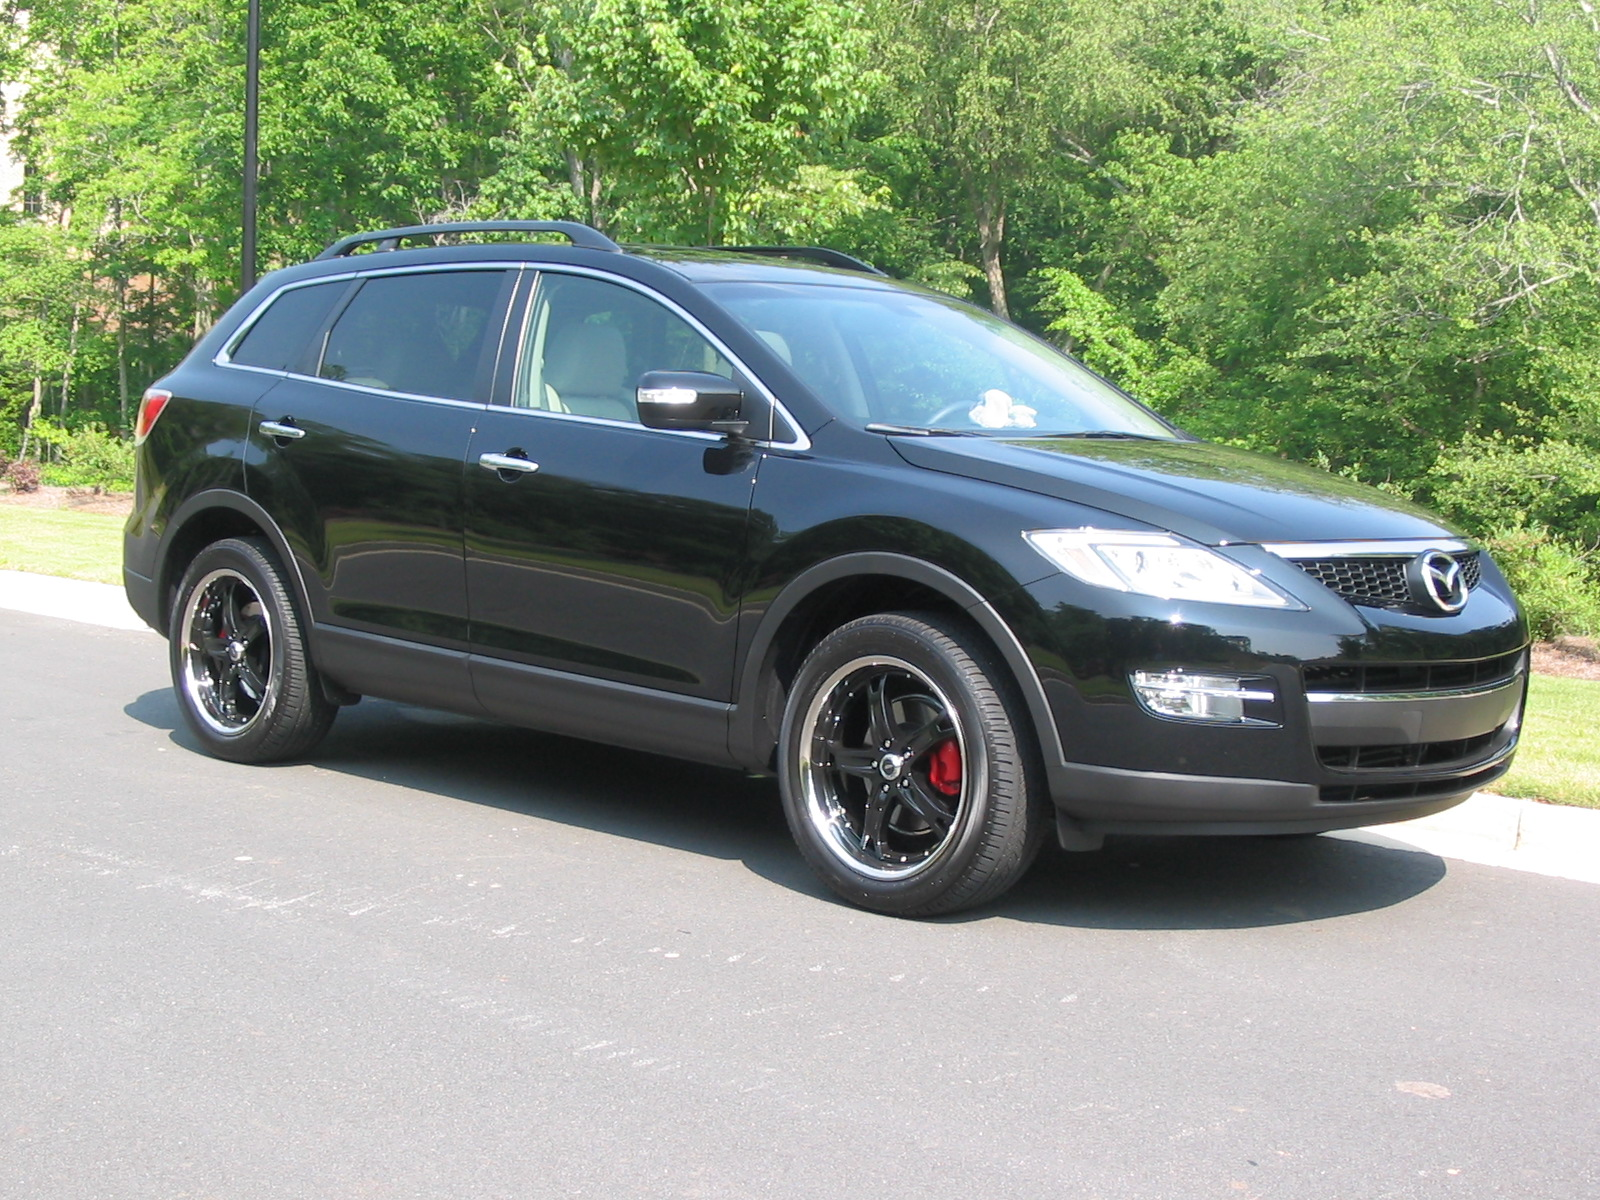 mazda cx-9 grand touring-pic. 3